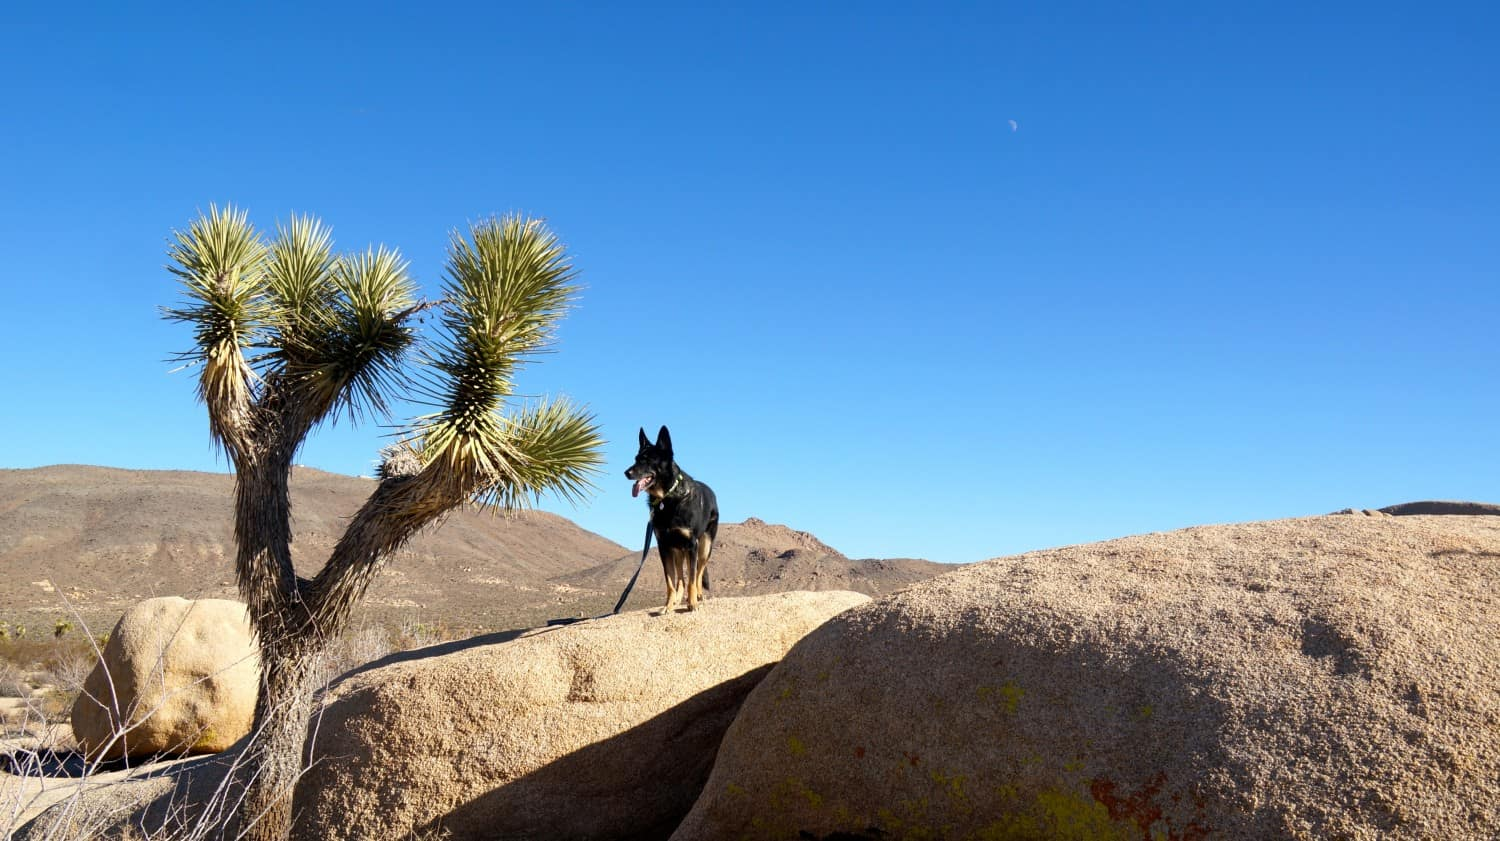 Buster at Joshua Tree National Park - Palm Springs, CA